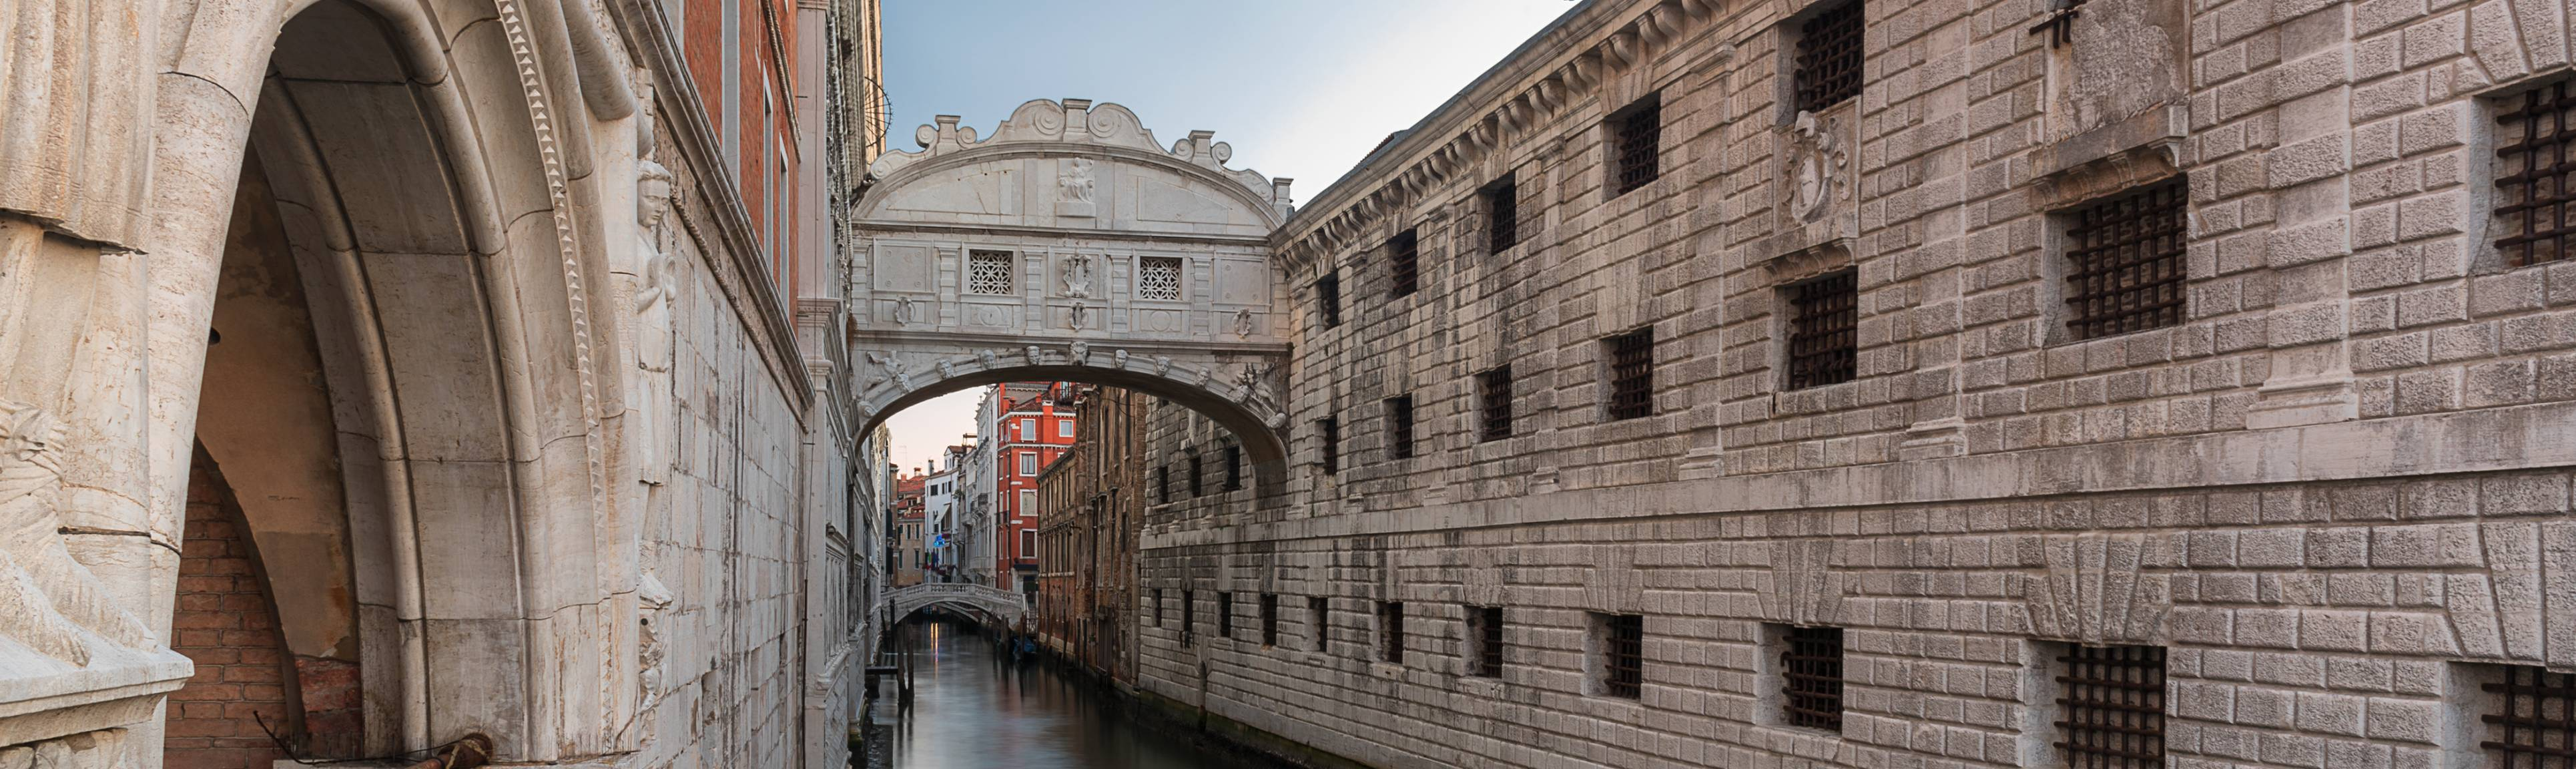 Approaching the Bridge of Sighs in Venice, Italy